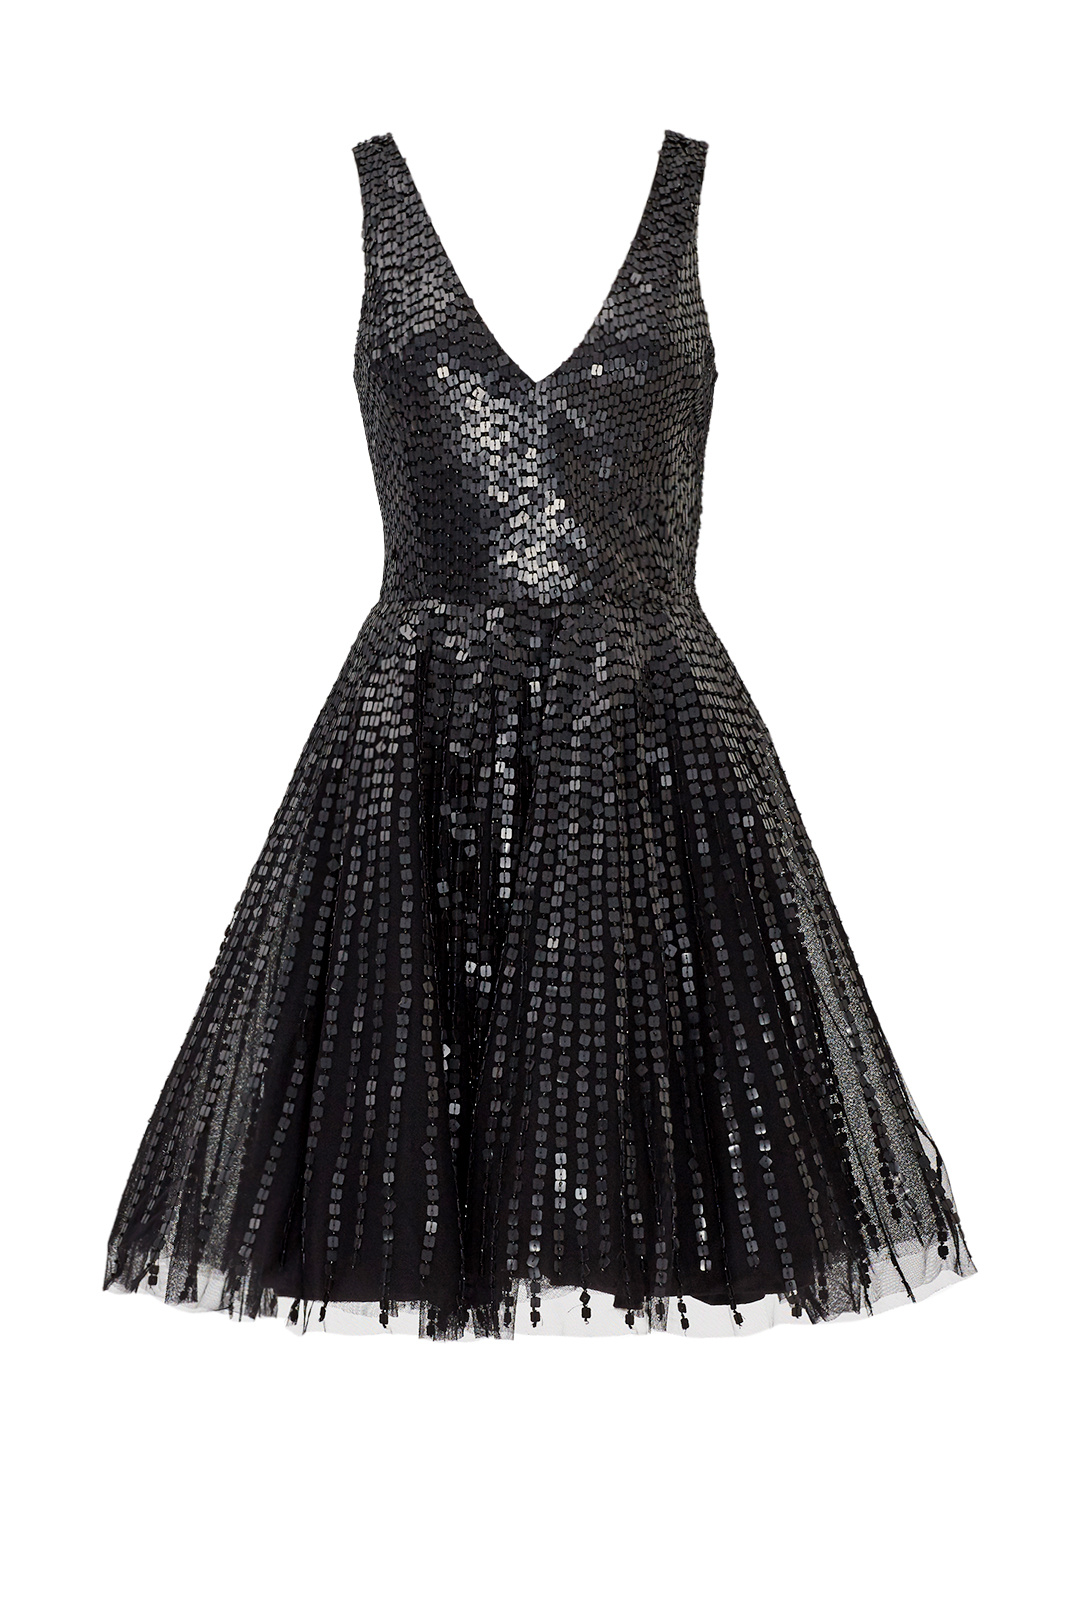 Parker - Black Theater Dress